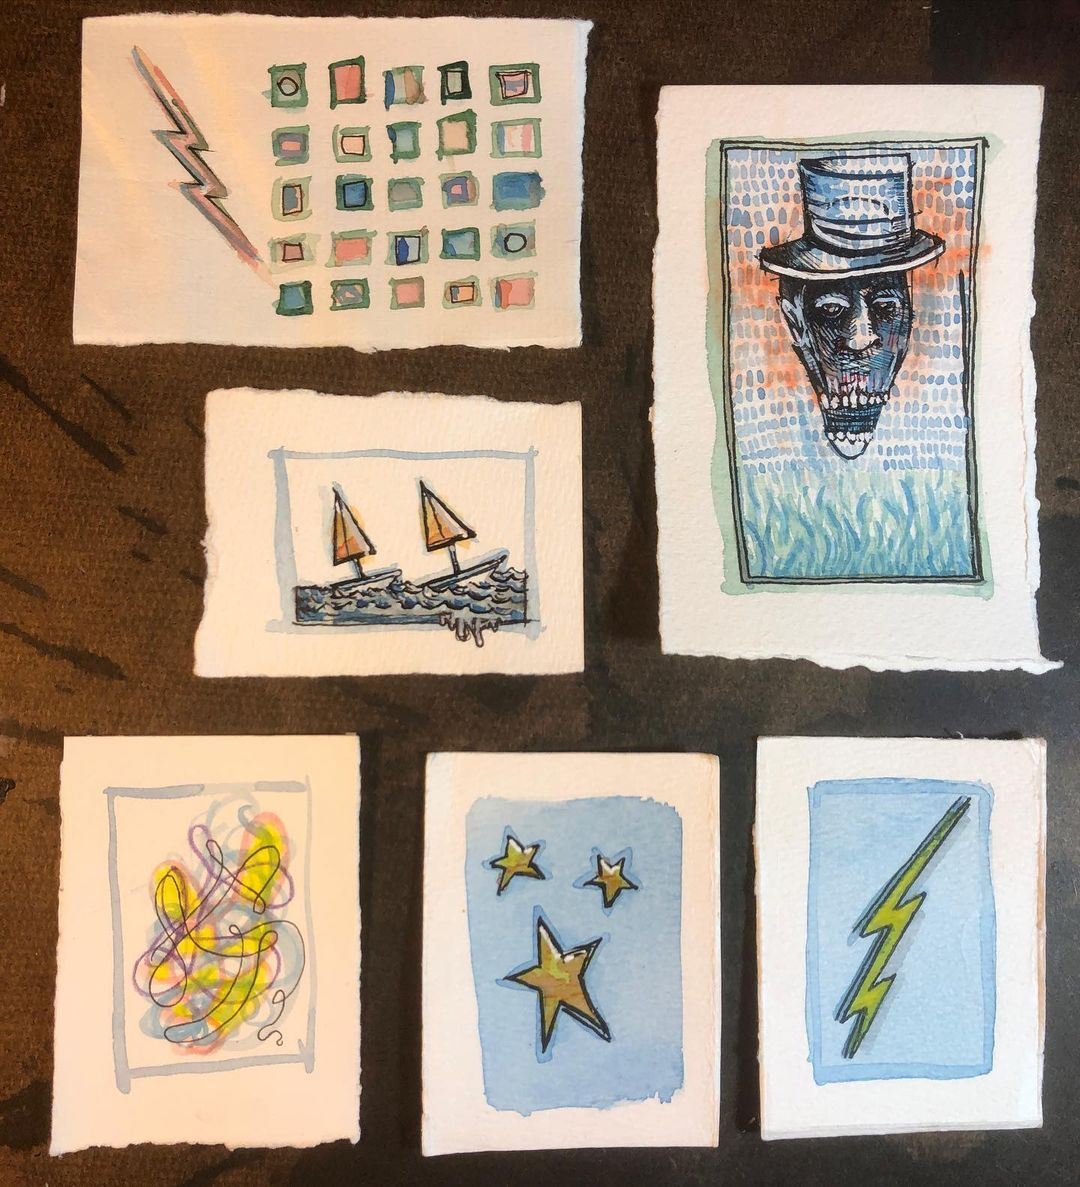 Tiny watercolor/ink drawings